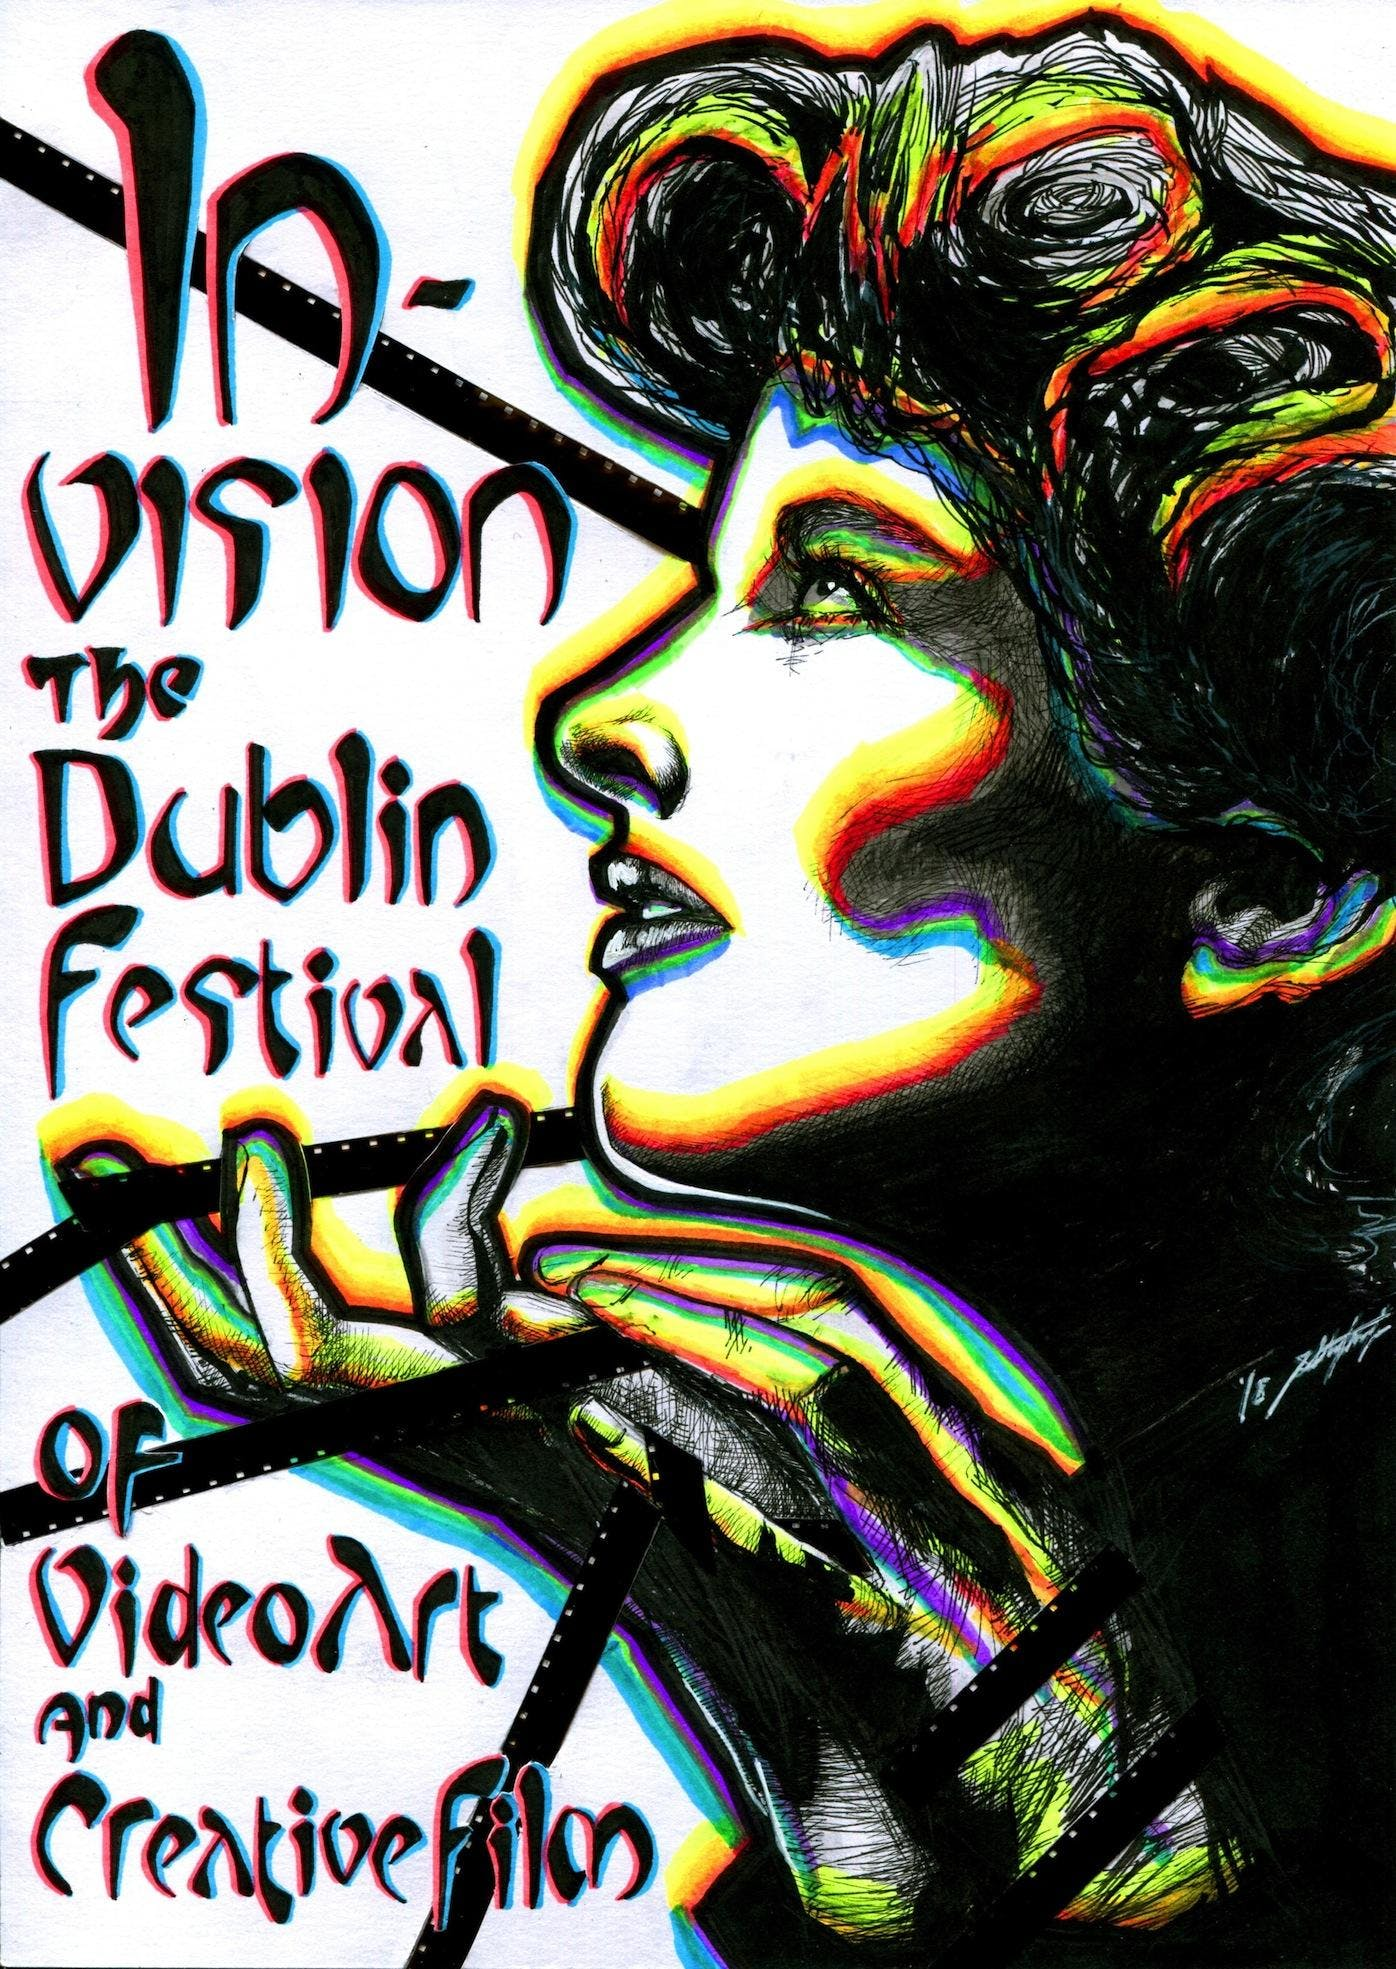 In-Vision: The Dublin Festival of Video Art and Creative Film